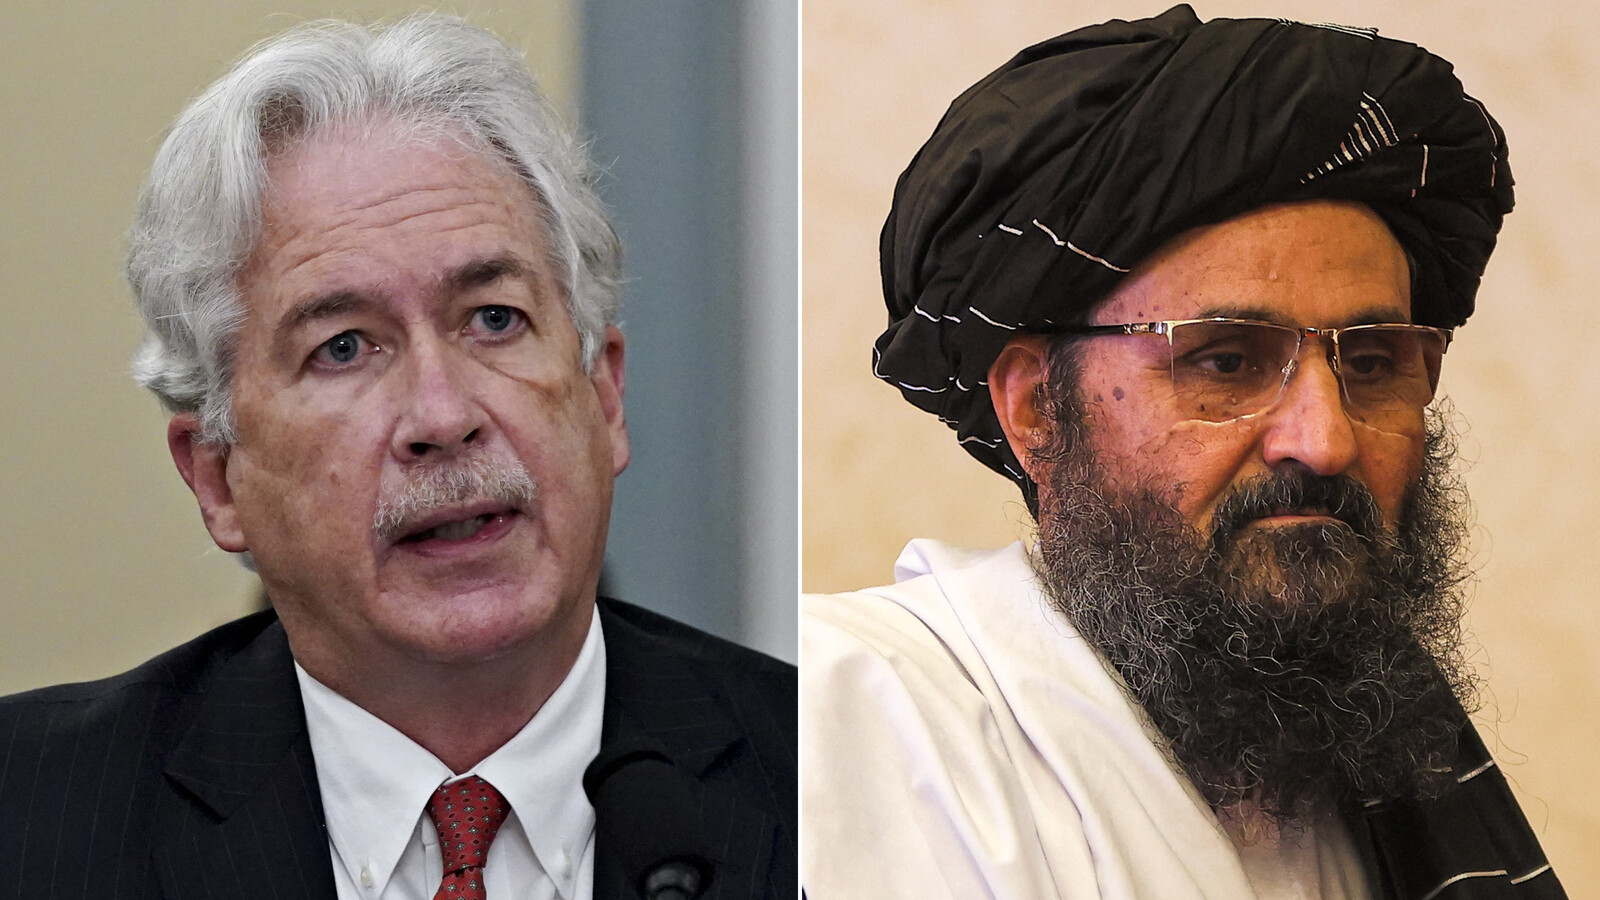 CIA director met with Taliban leader in Kabul on Monday amid evacuation efforts